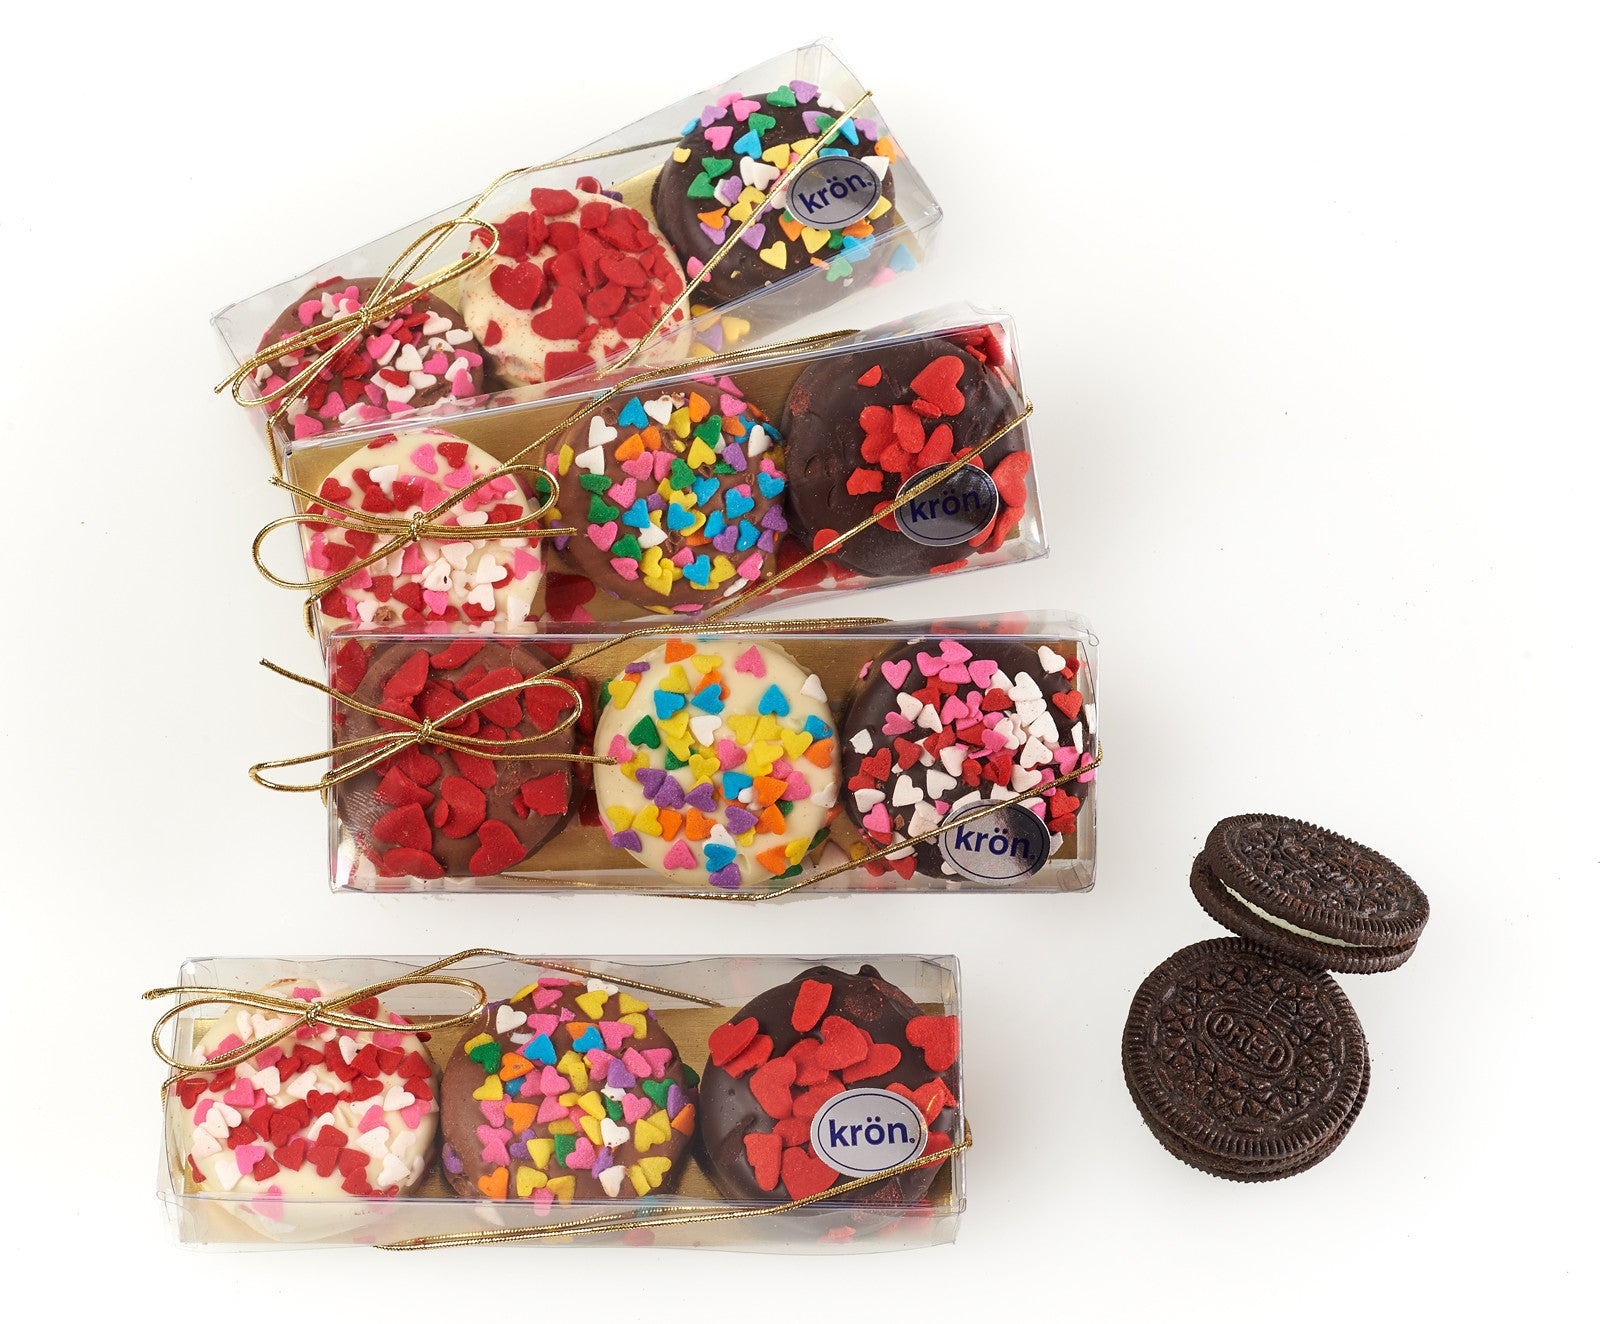 Chocolate Covered Oreo(R) Party Favors, set of 4 boxes